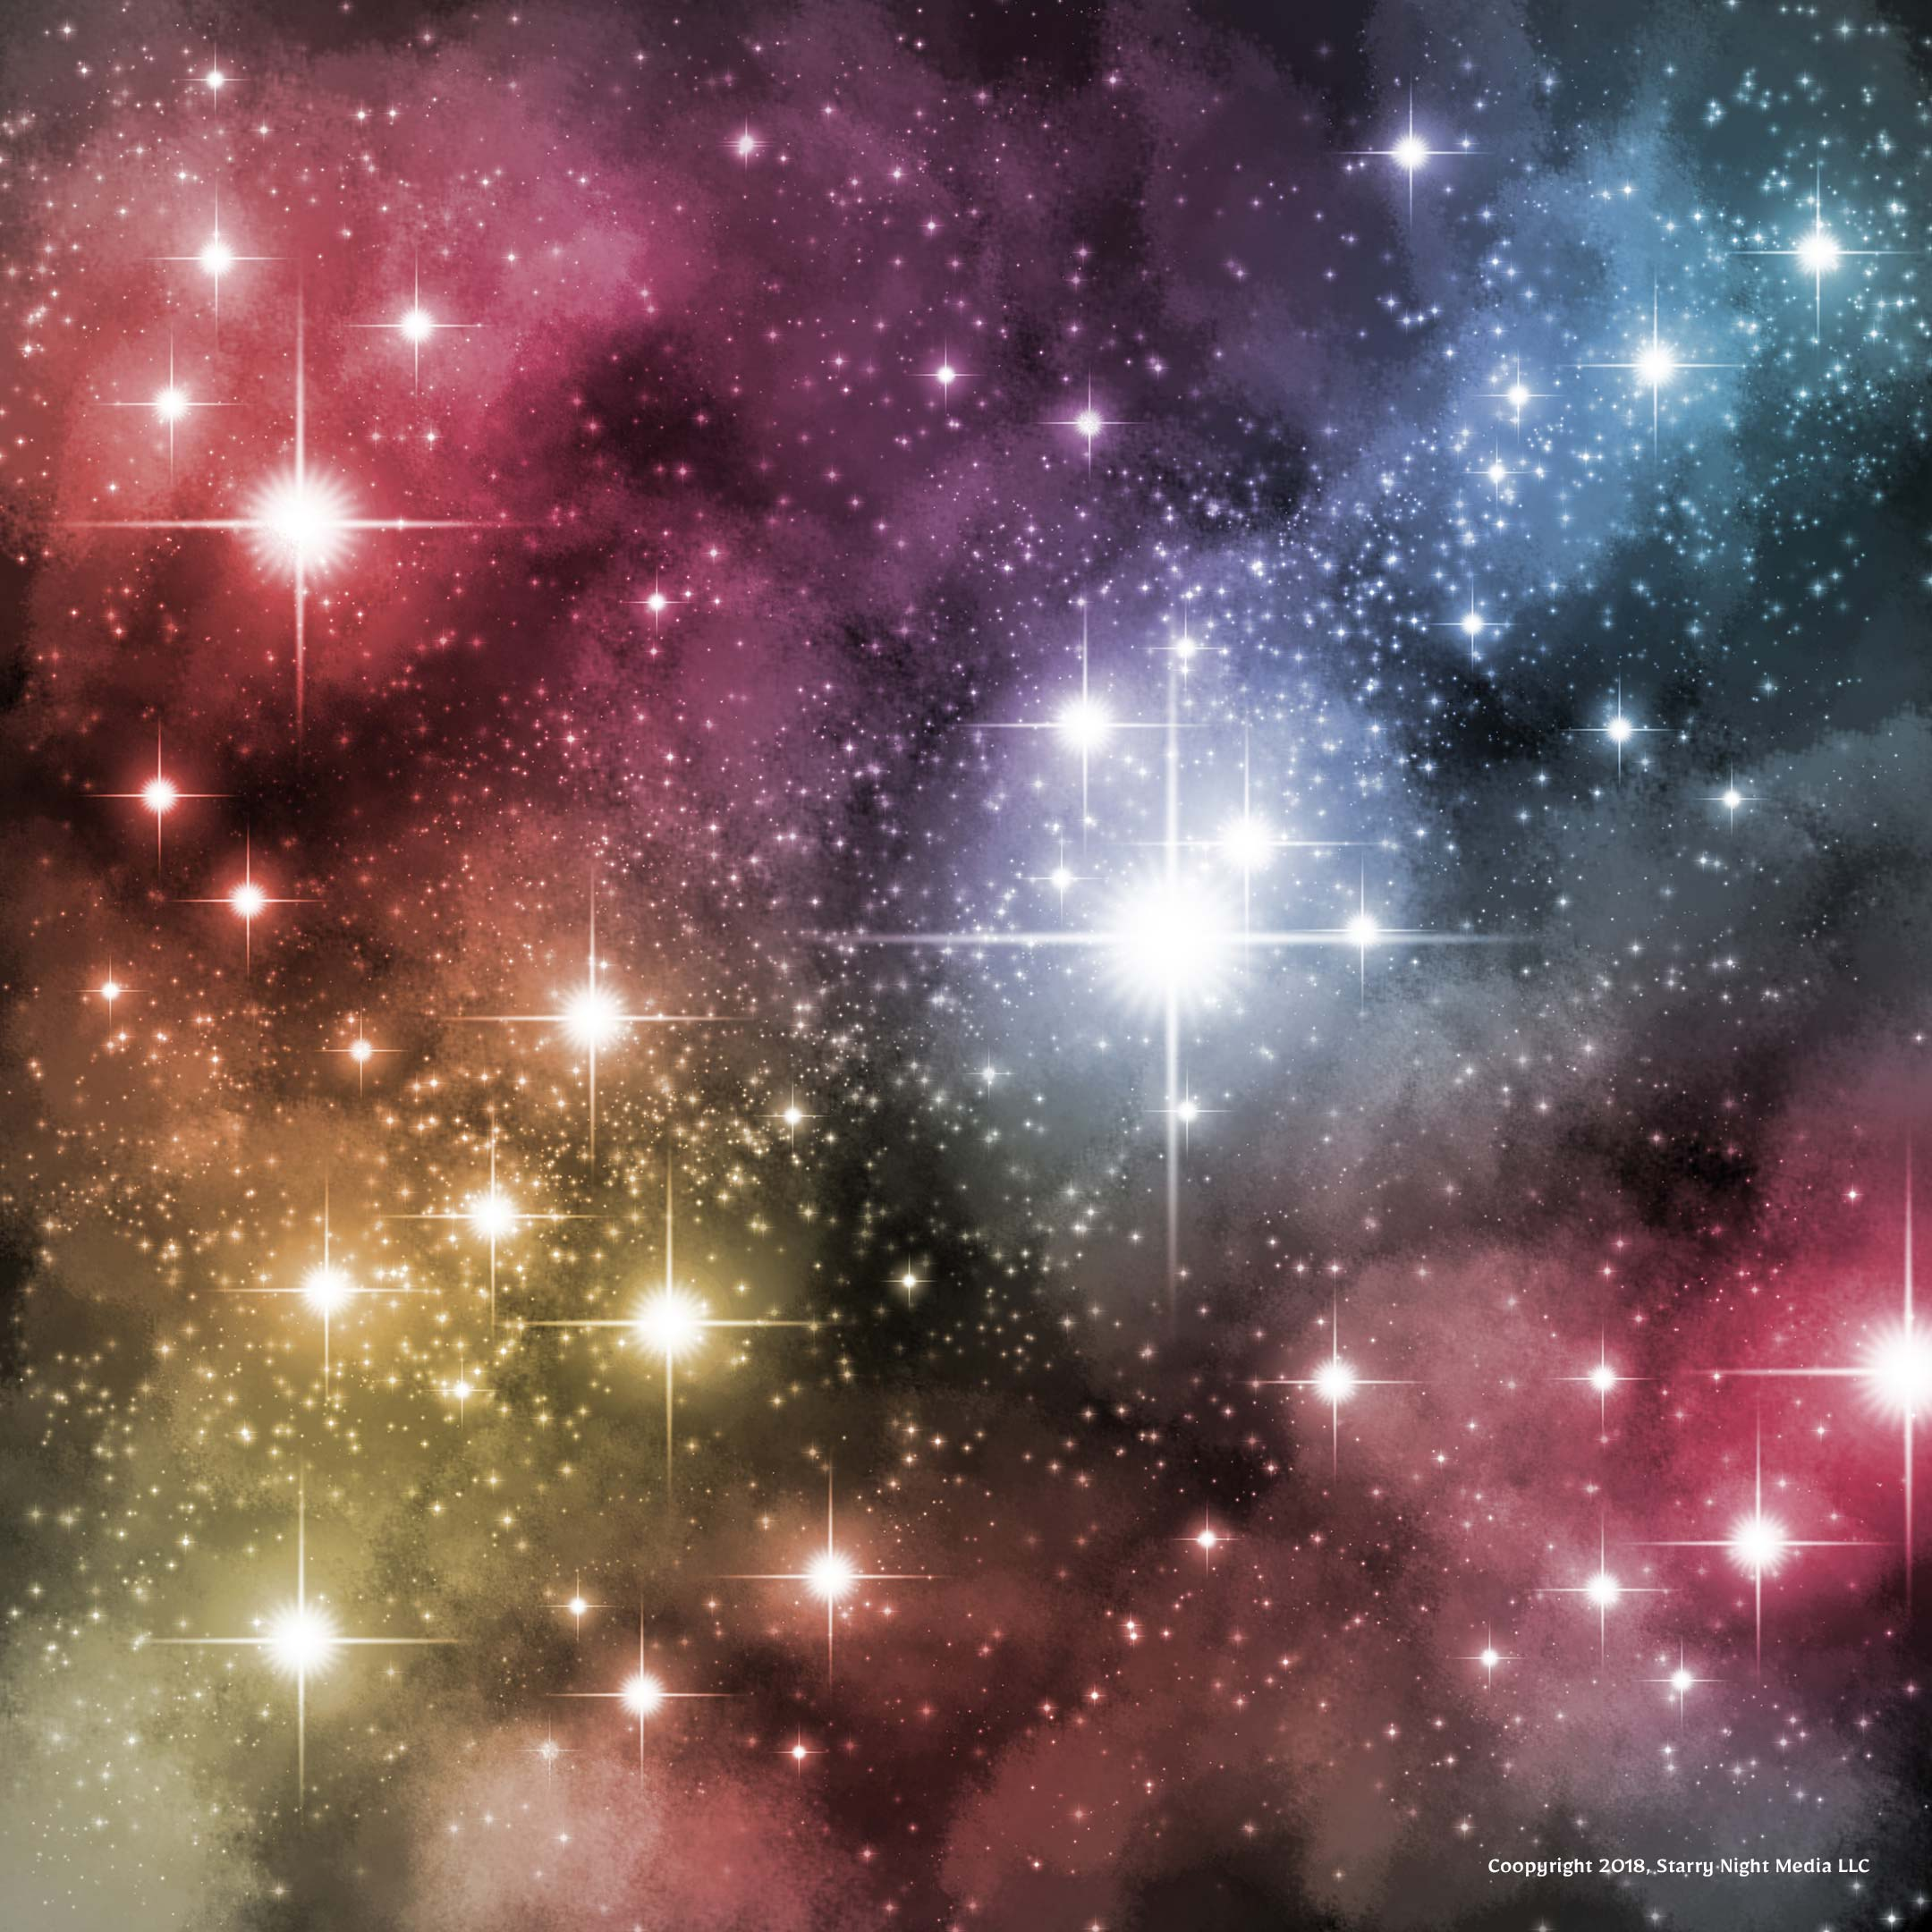 Custom realistic starfield brush and nebula painting Photoshop tutorial